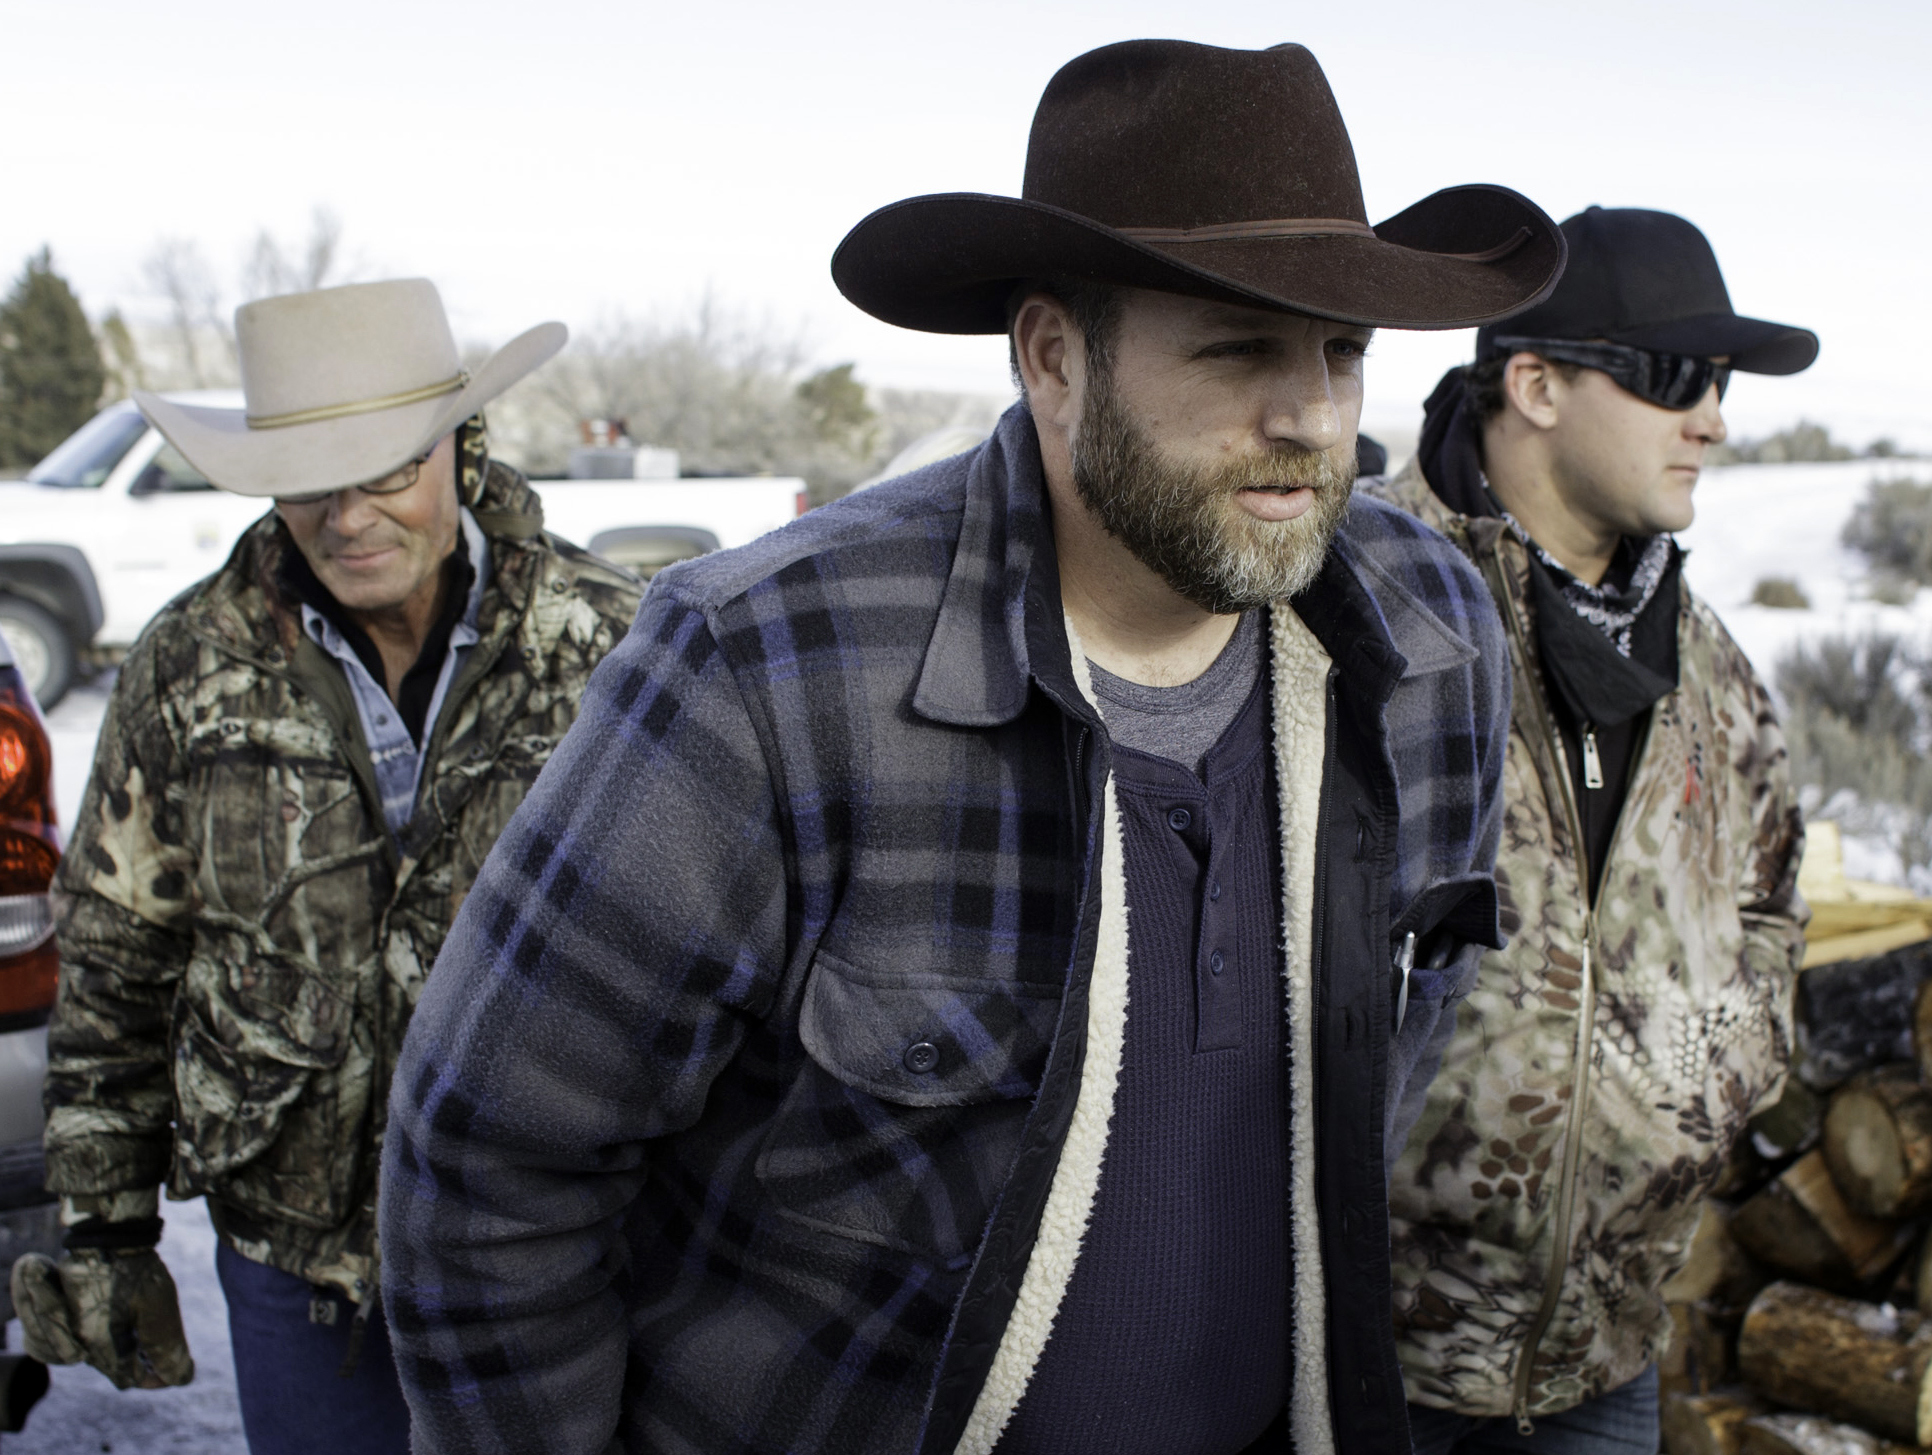 Ammon Bundy vows to defy stay-at-home orders for Easter gathering